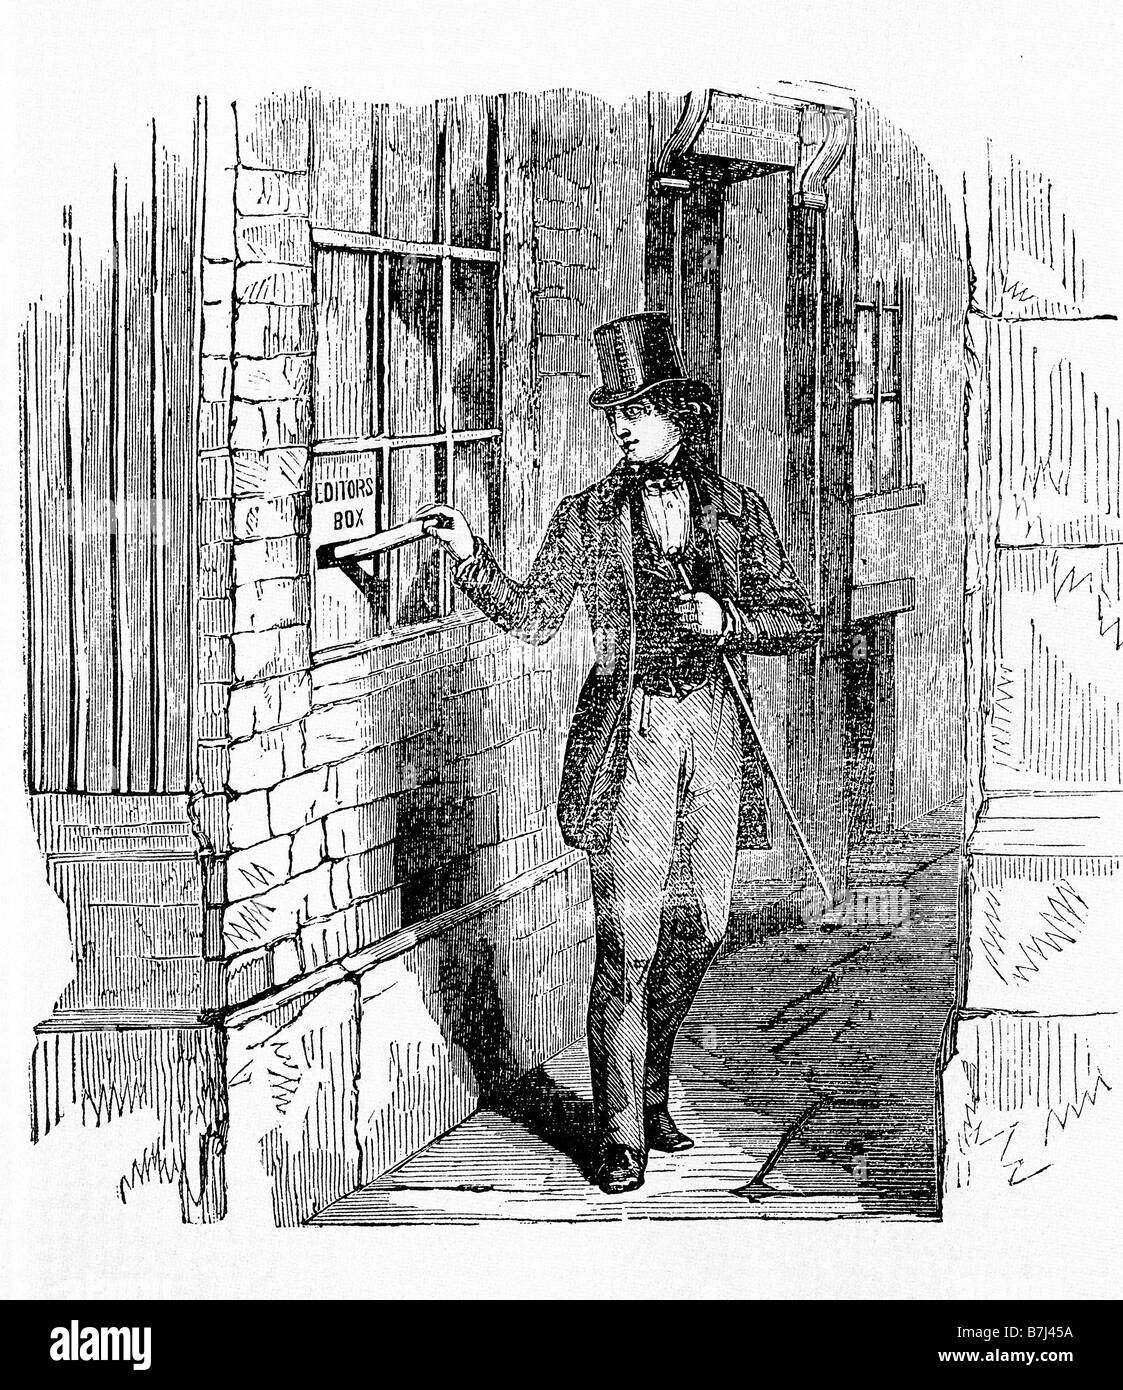 Charles Dickens Delivers His First Manuscript 1833 to the Monthly Magazine the start of Sketches by Boz - Stock Image